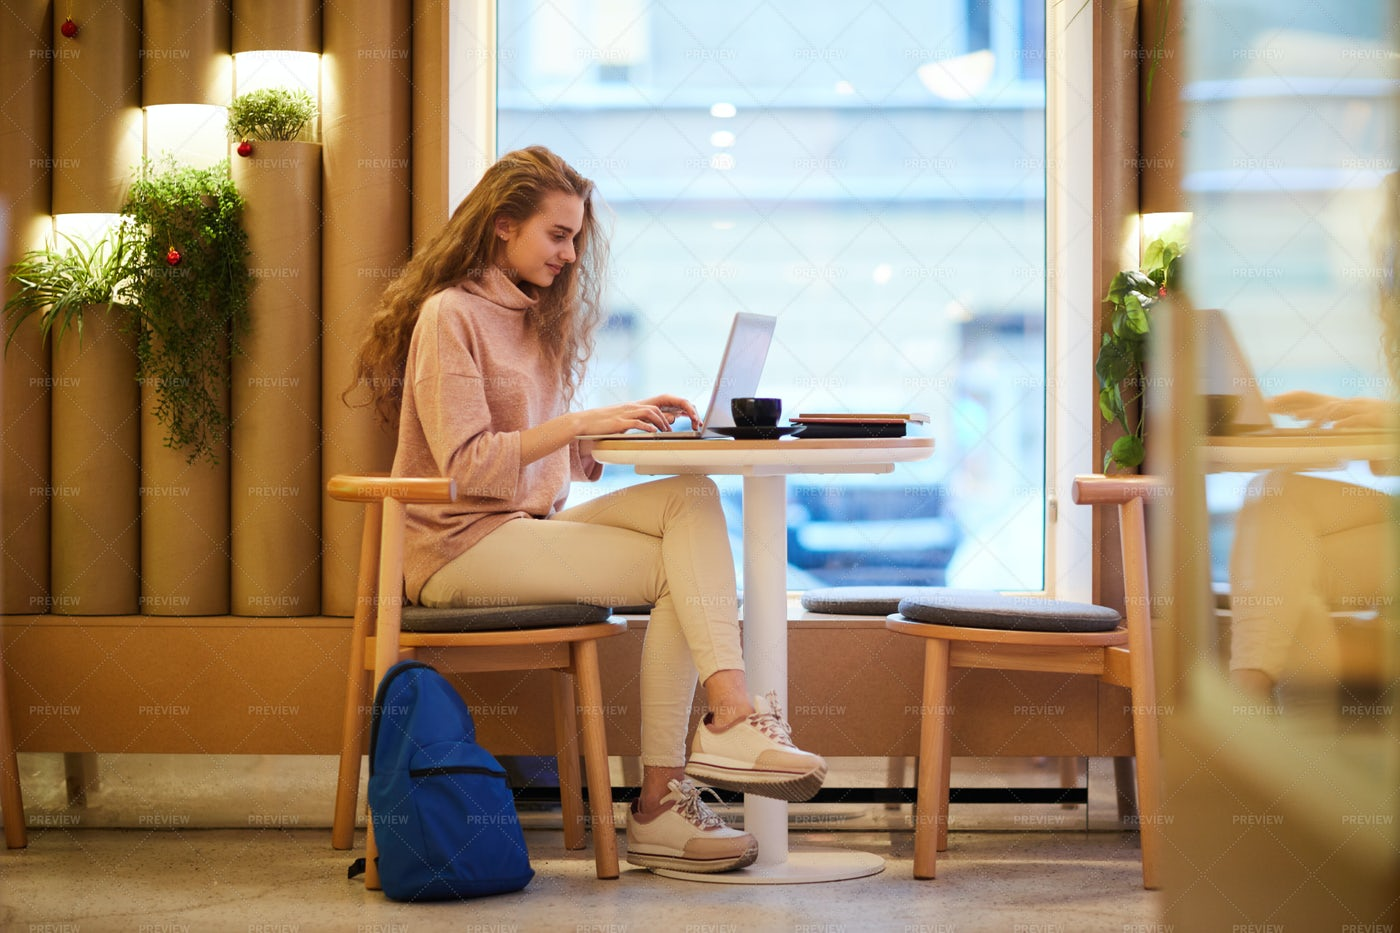 Female Student In Cafe: Stock Photos